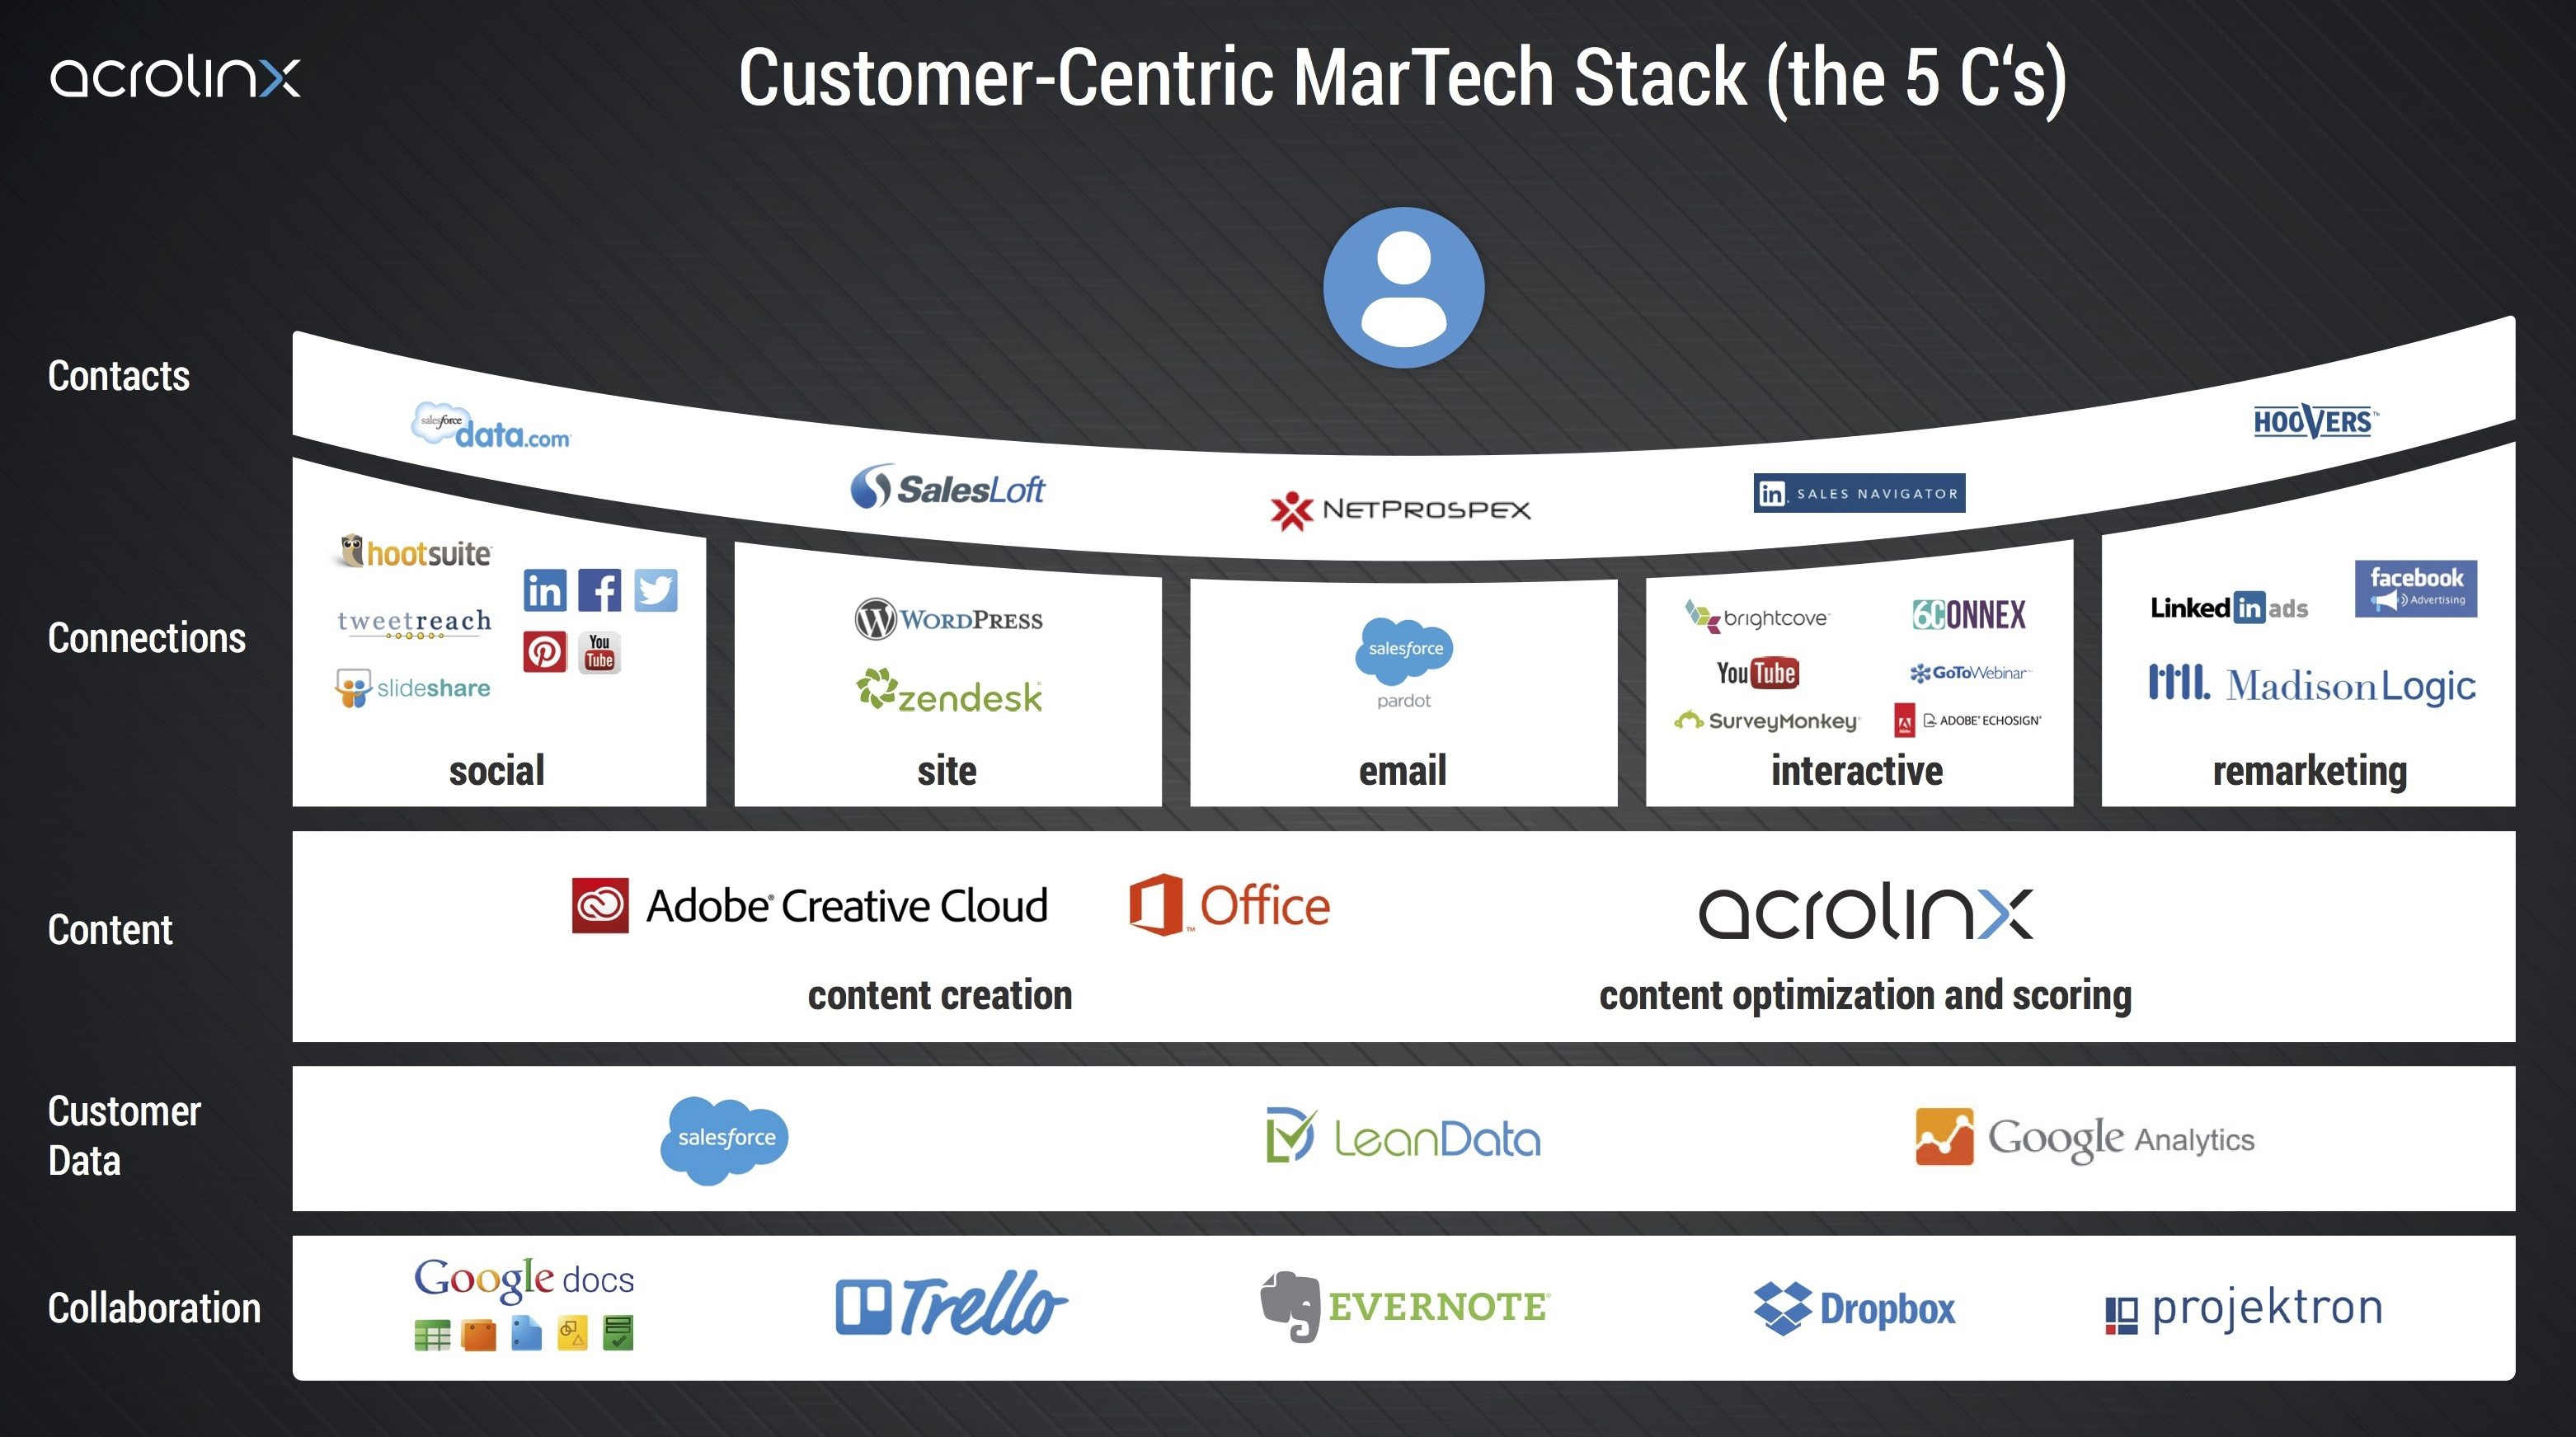 This picture shows how Acrolinx's marketing stack helps them organize and execute their marketing activities.